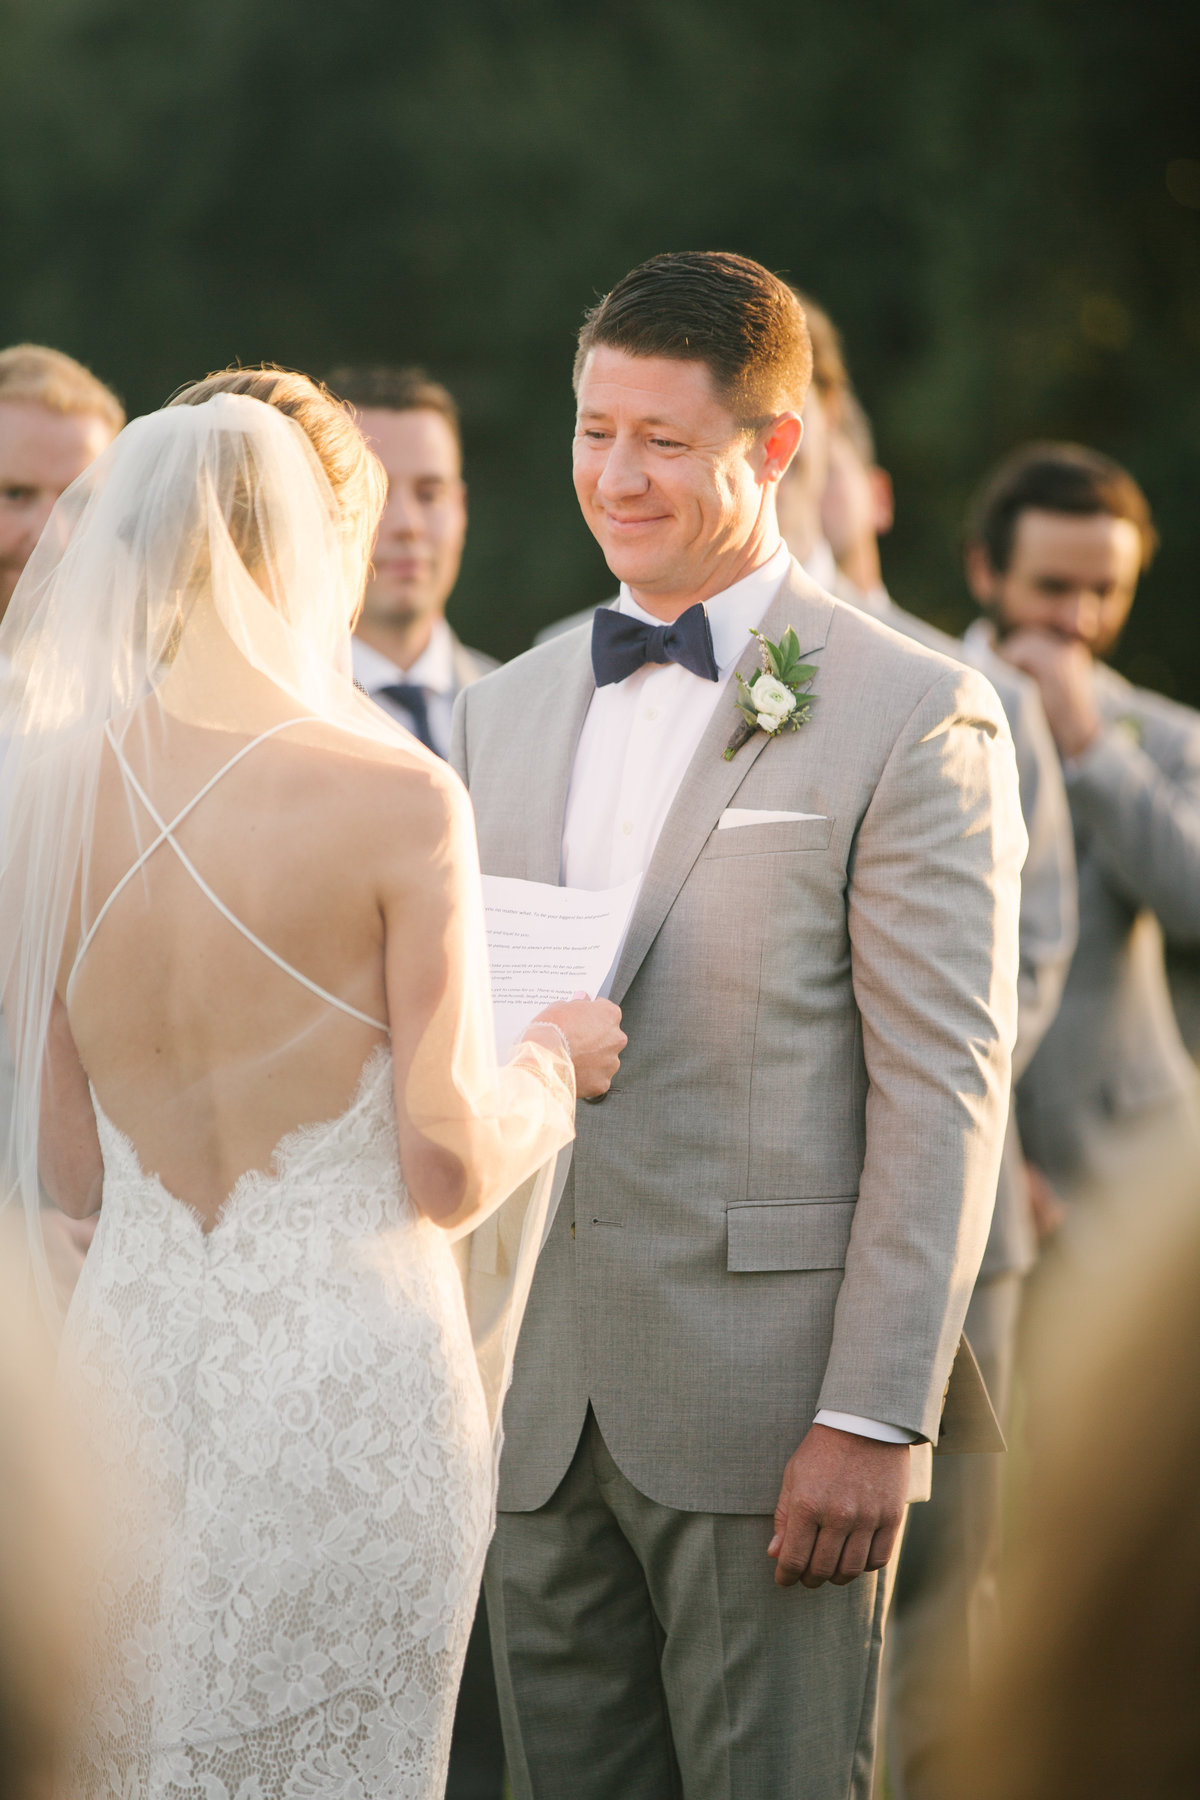 Bride recites vows at Firestone Vineyard wedding